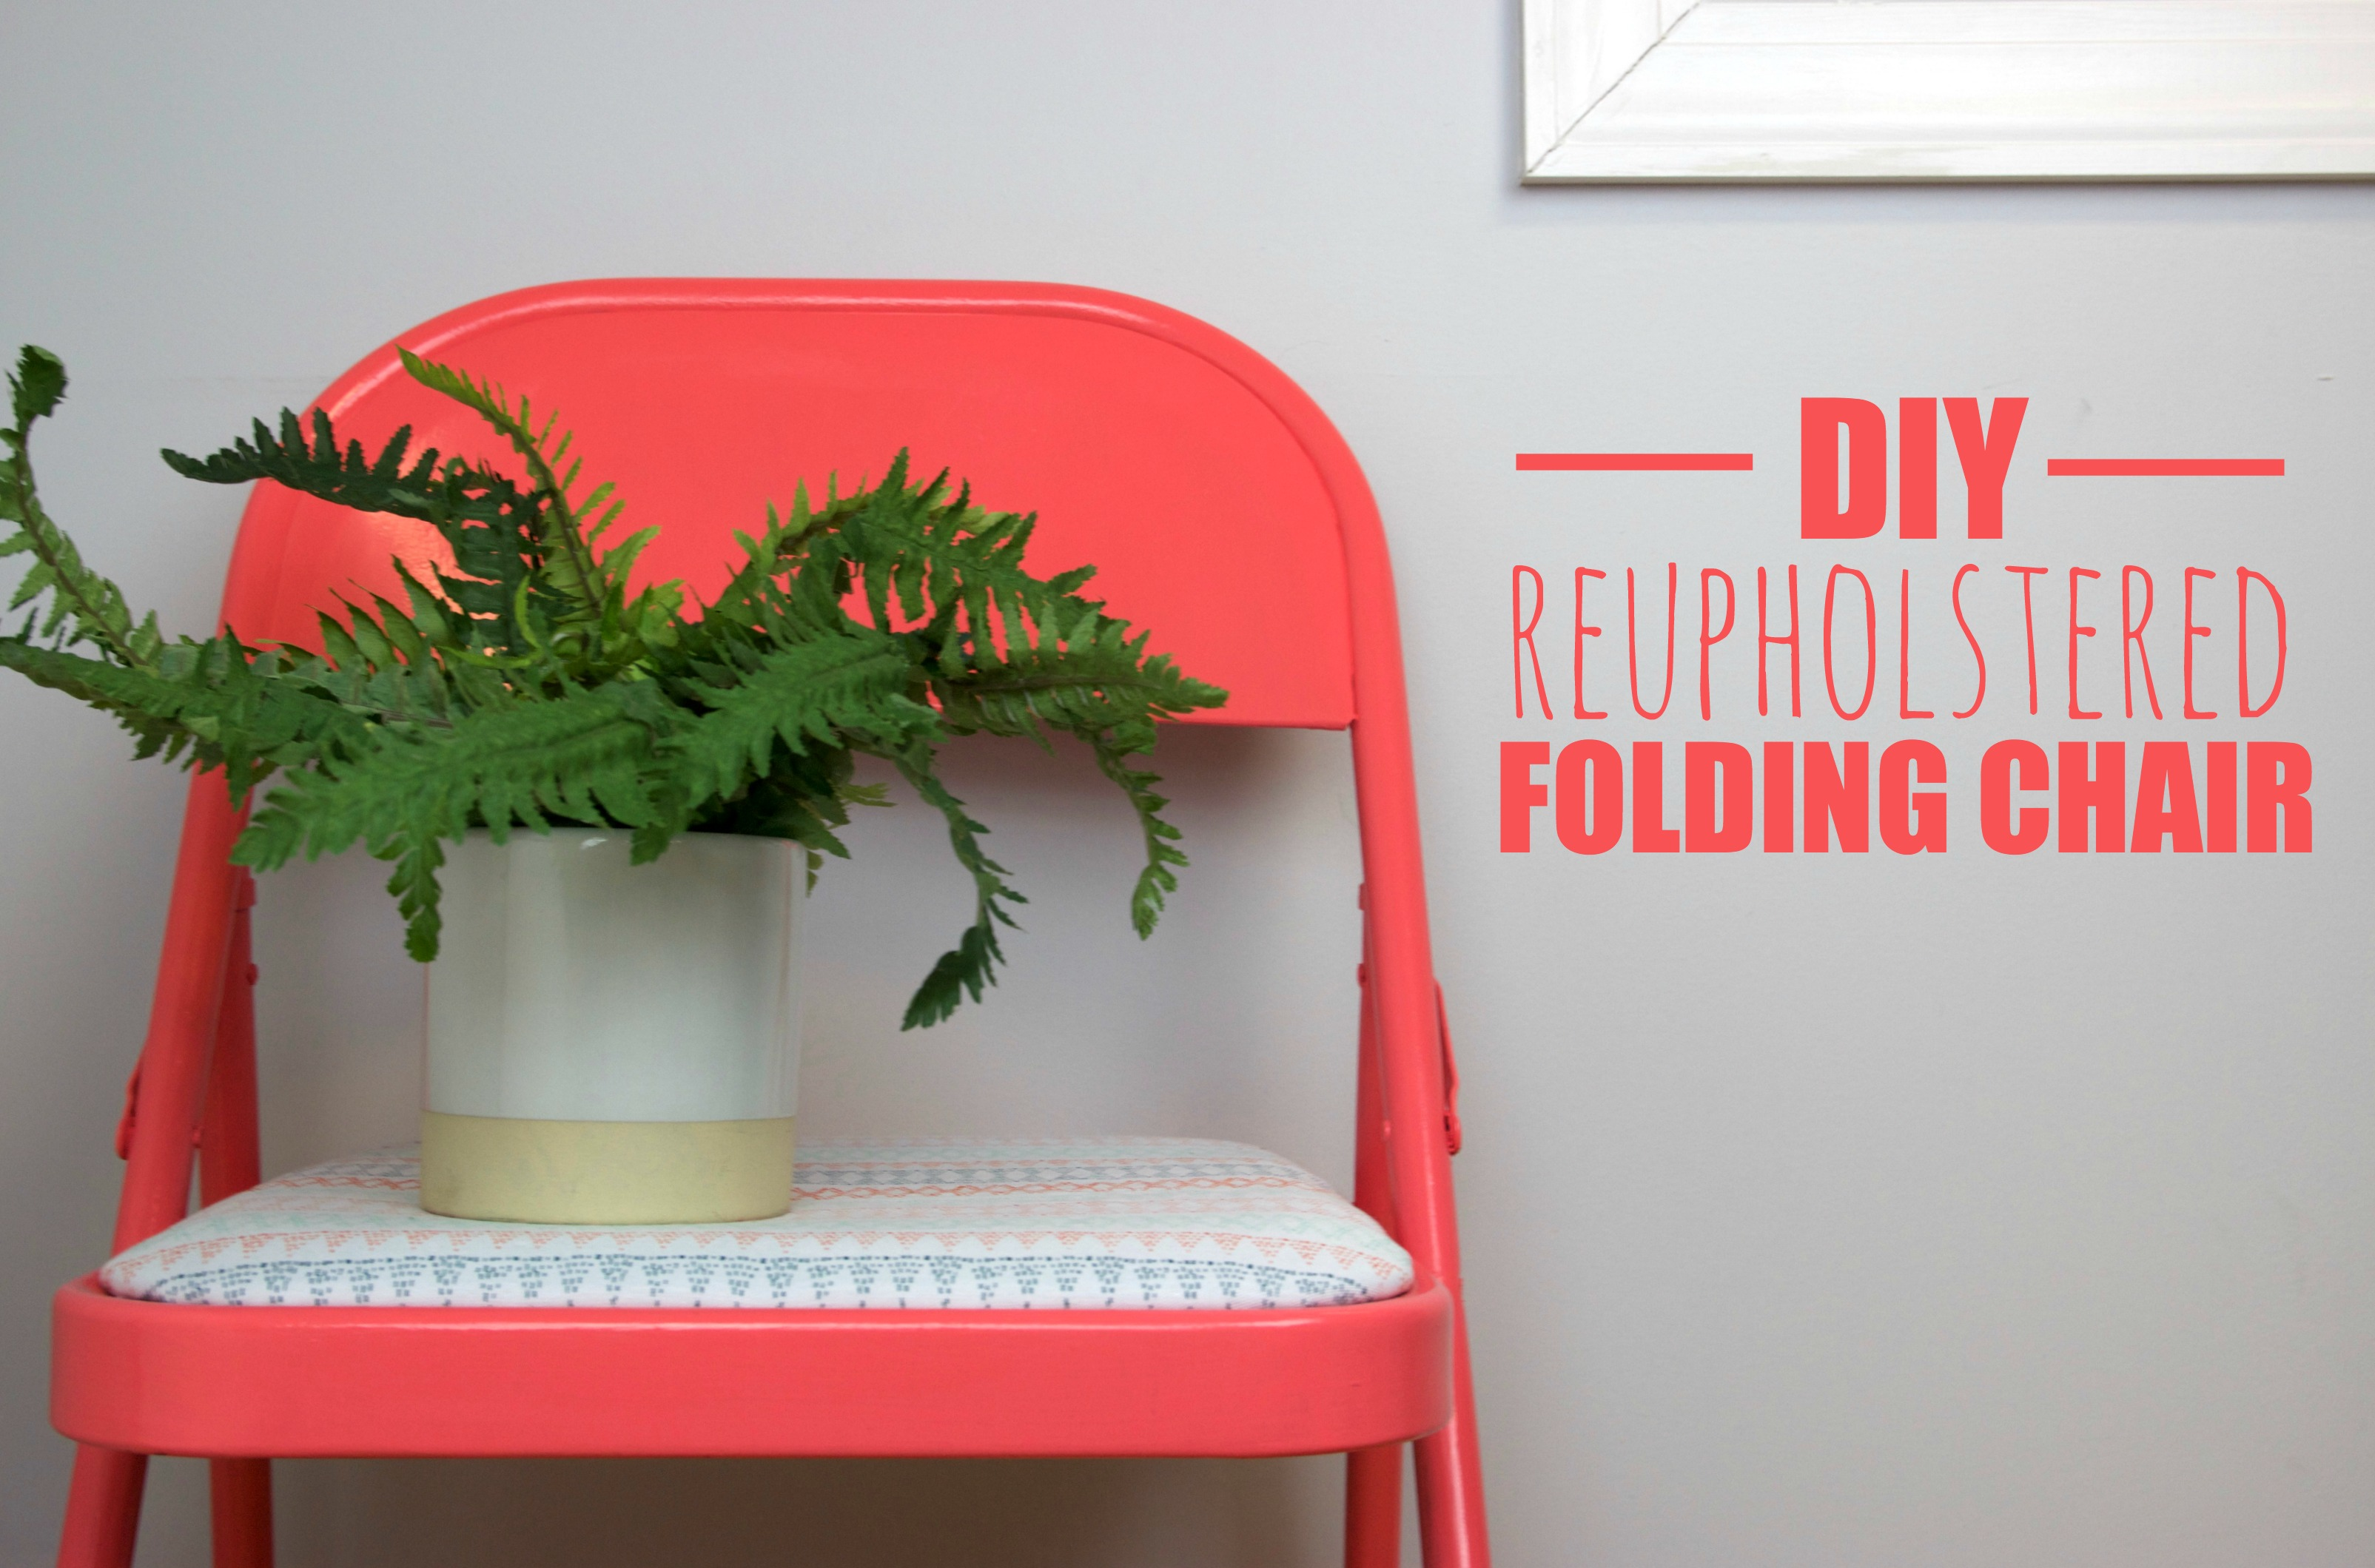 diy_Reupholstered_folding_chair